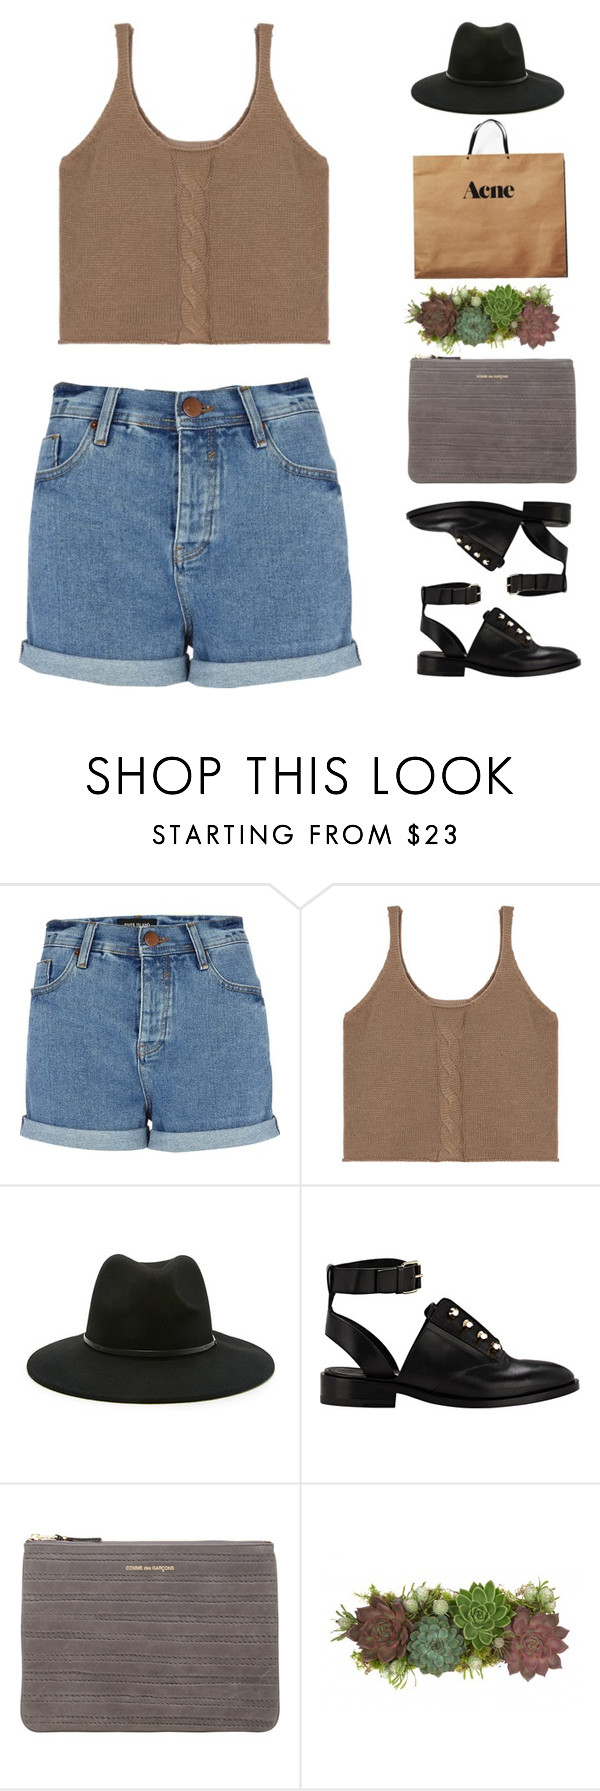 """""""Untitled #2146"""" by tacoxcat ❤ liked on Polyvore featuring River Island, Forever 21, Balenciaga, Comme des Garçons, Acne Studios, Jayson Home, women's clothing, women, female and woman"""